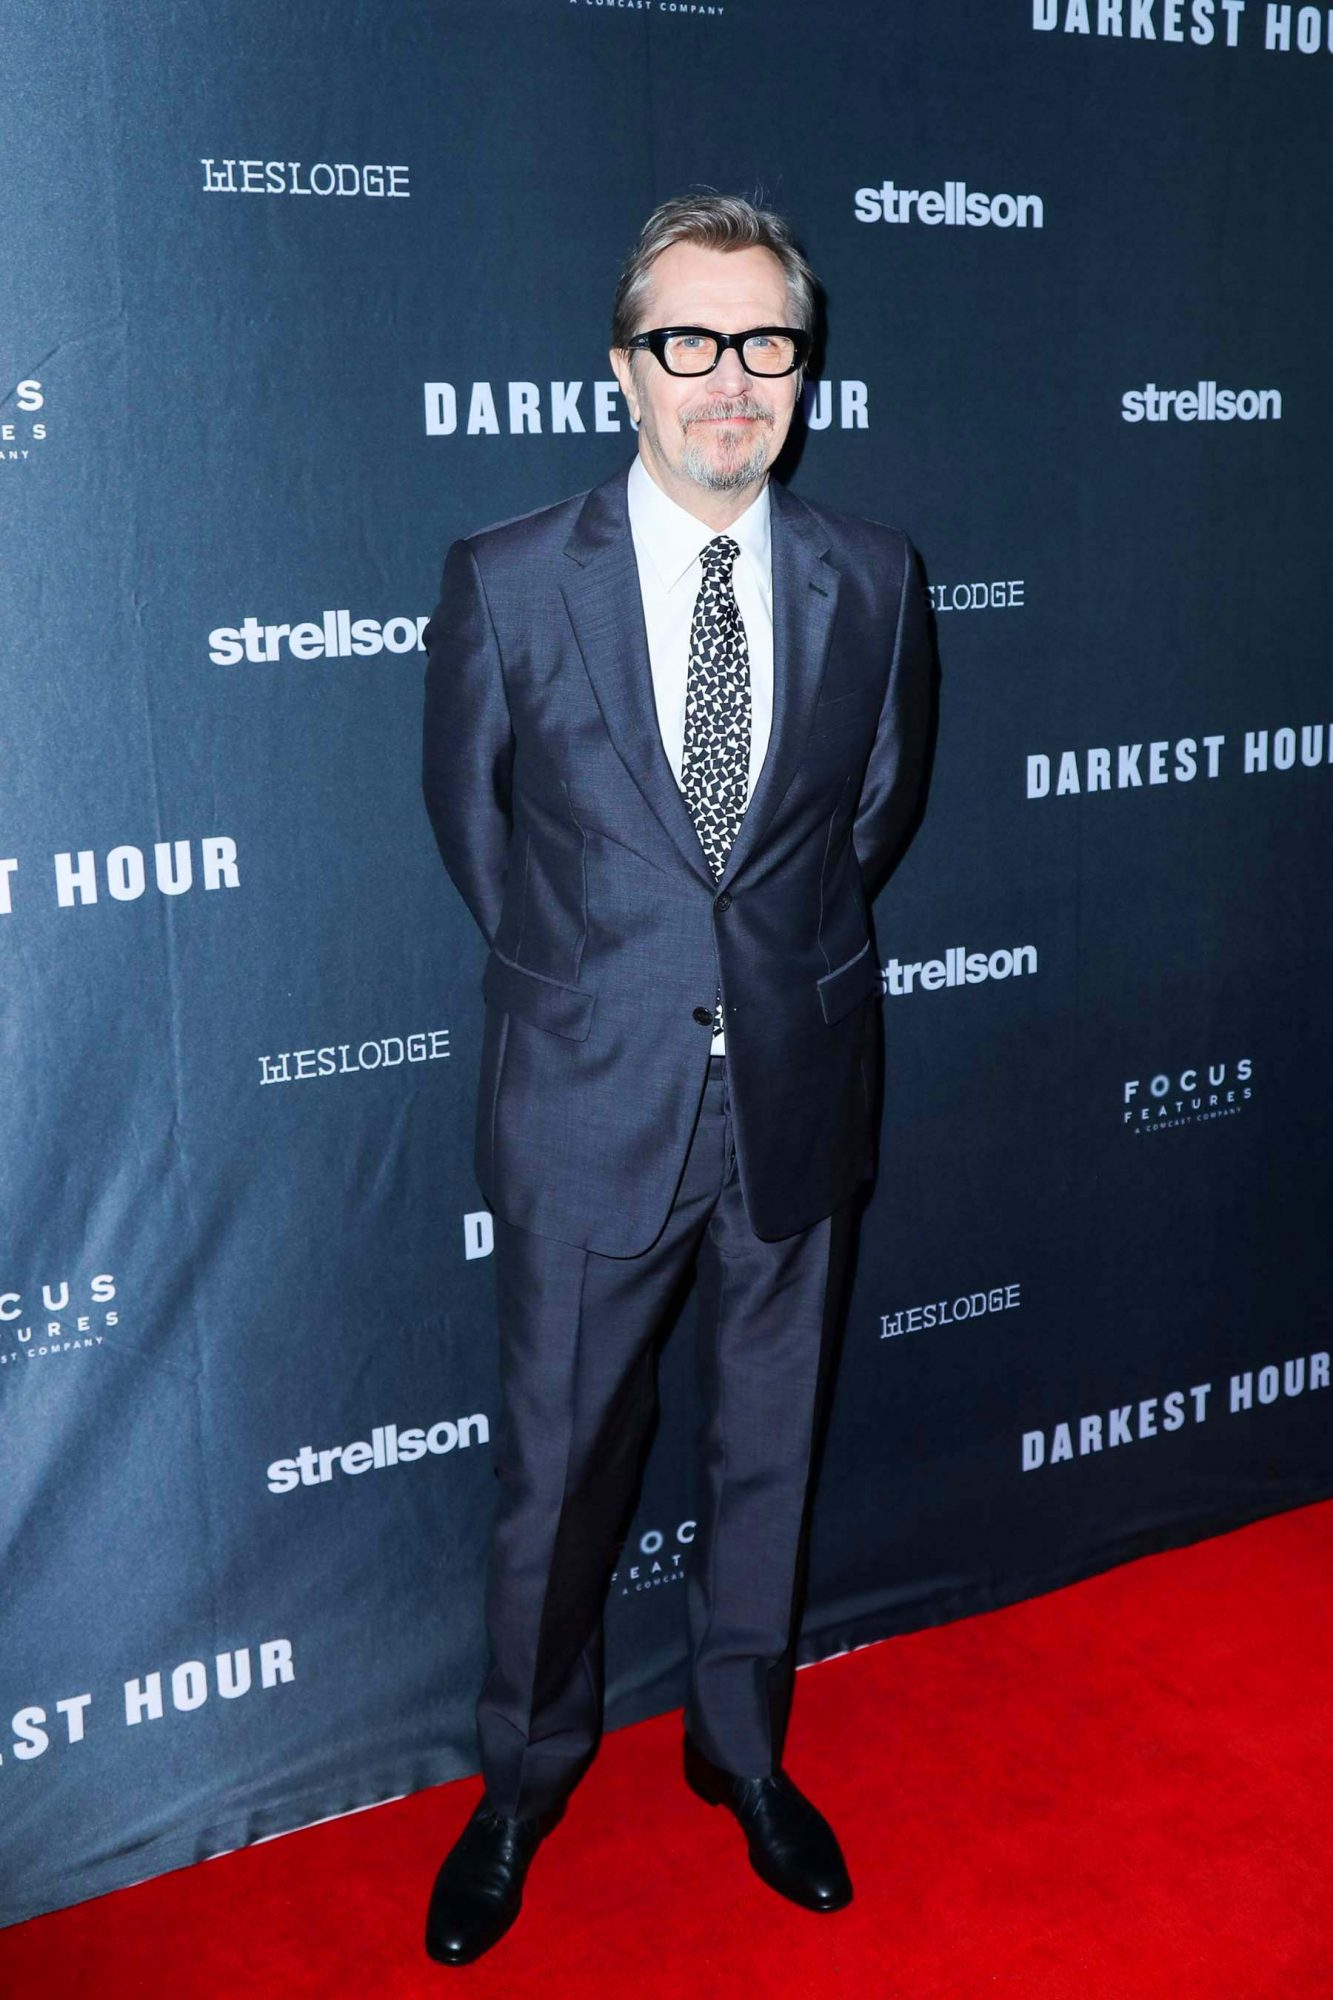 """Focus Features And Strellson Present """"Darkest Hour"""" Official Film Festival Premiere Party At Westlodge Toronto"""